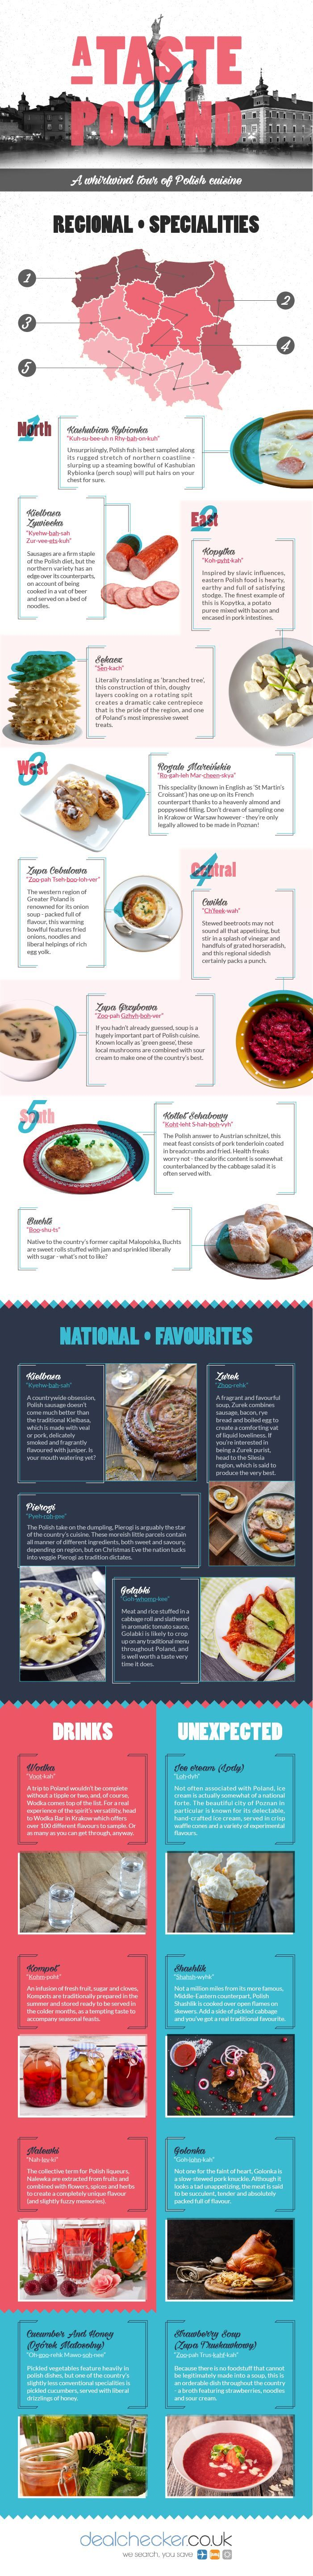 A Taste of Poland #Infographic #Food